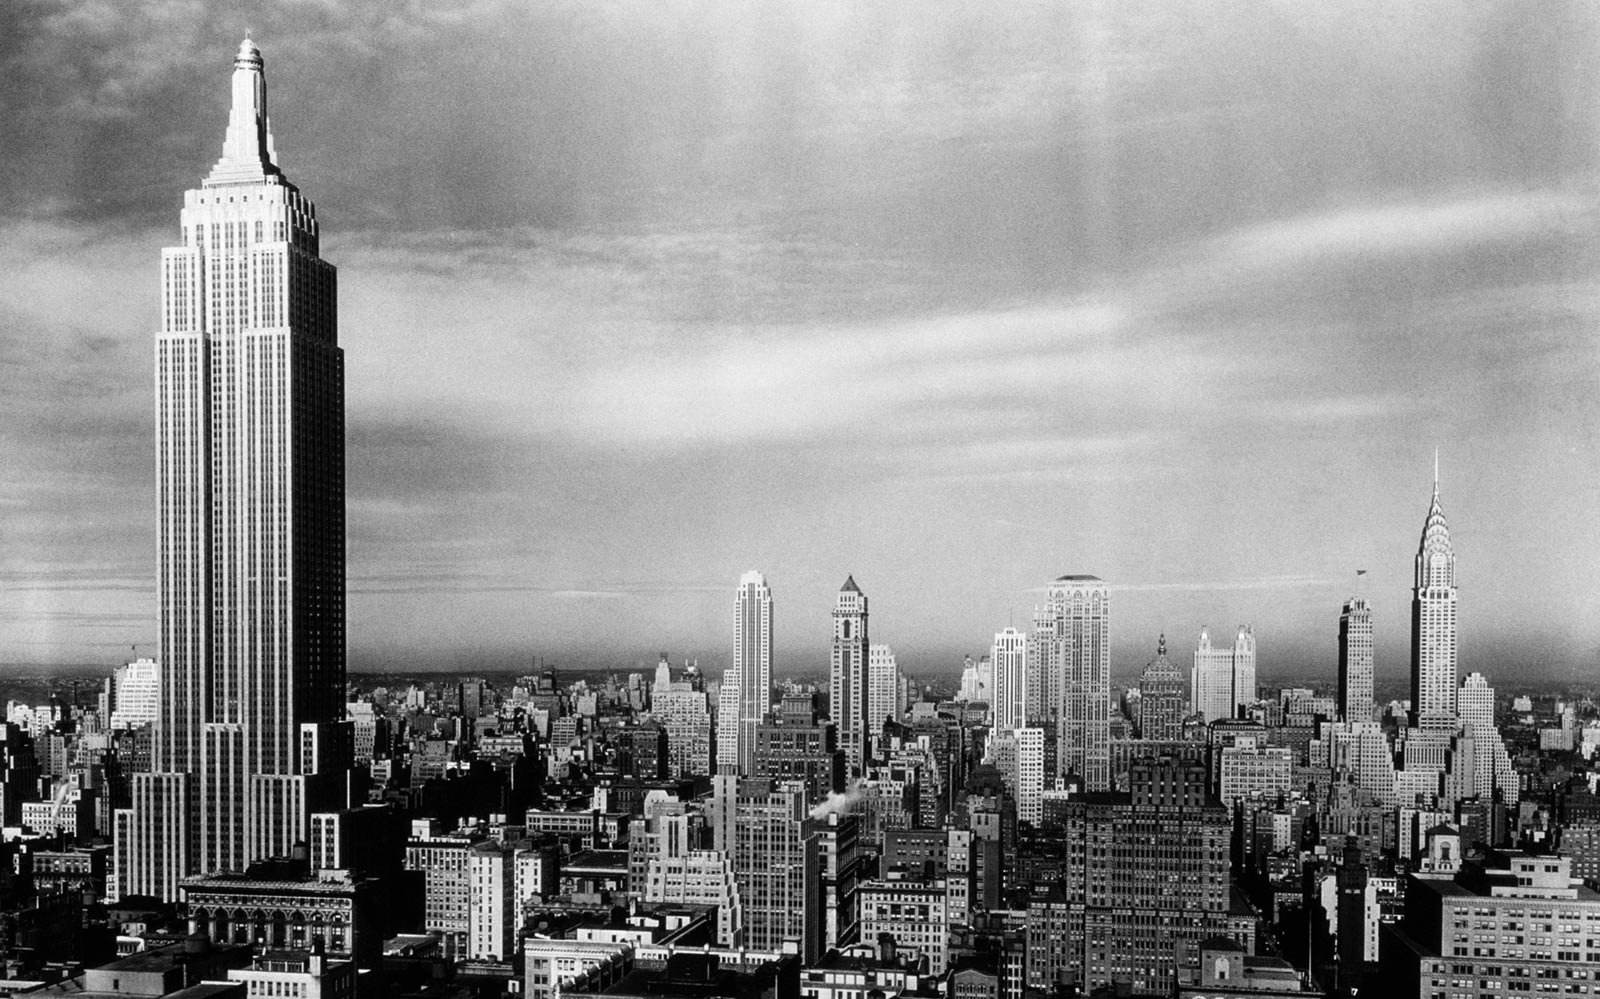 Empire State Building in the 1930s